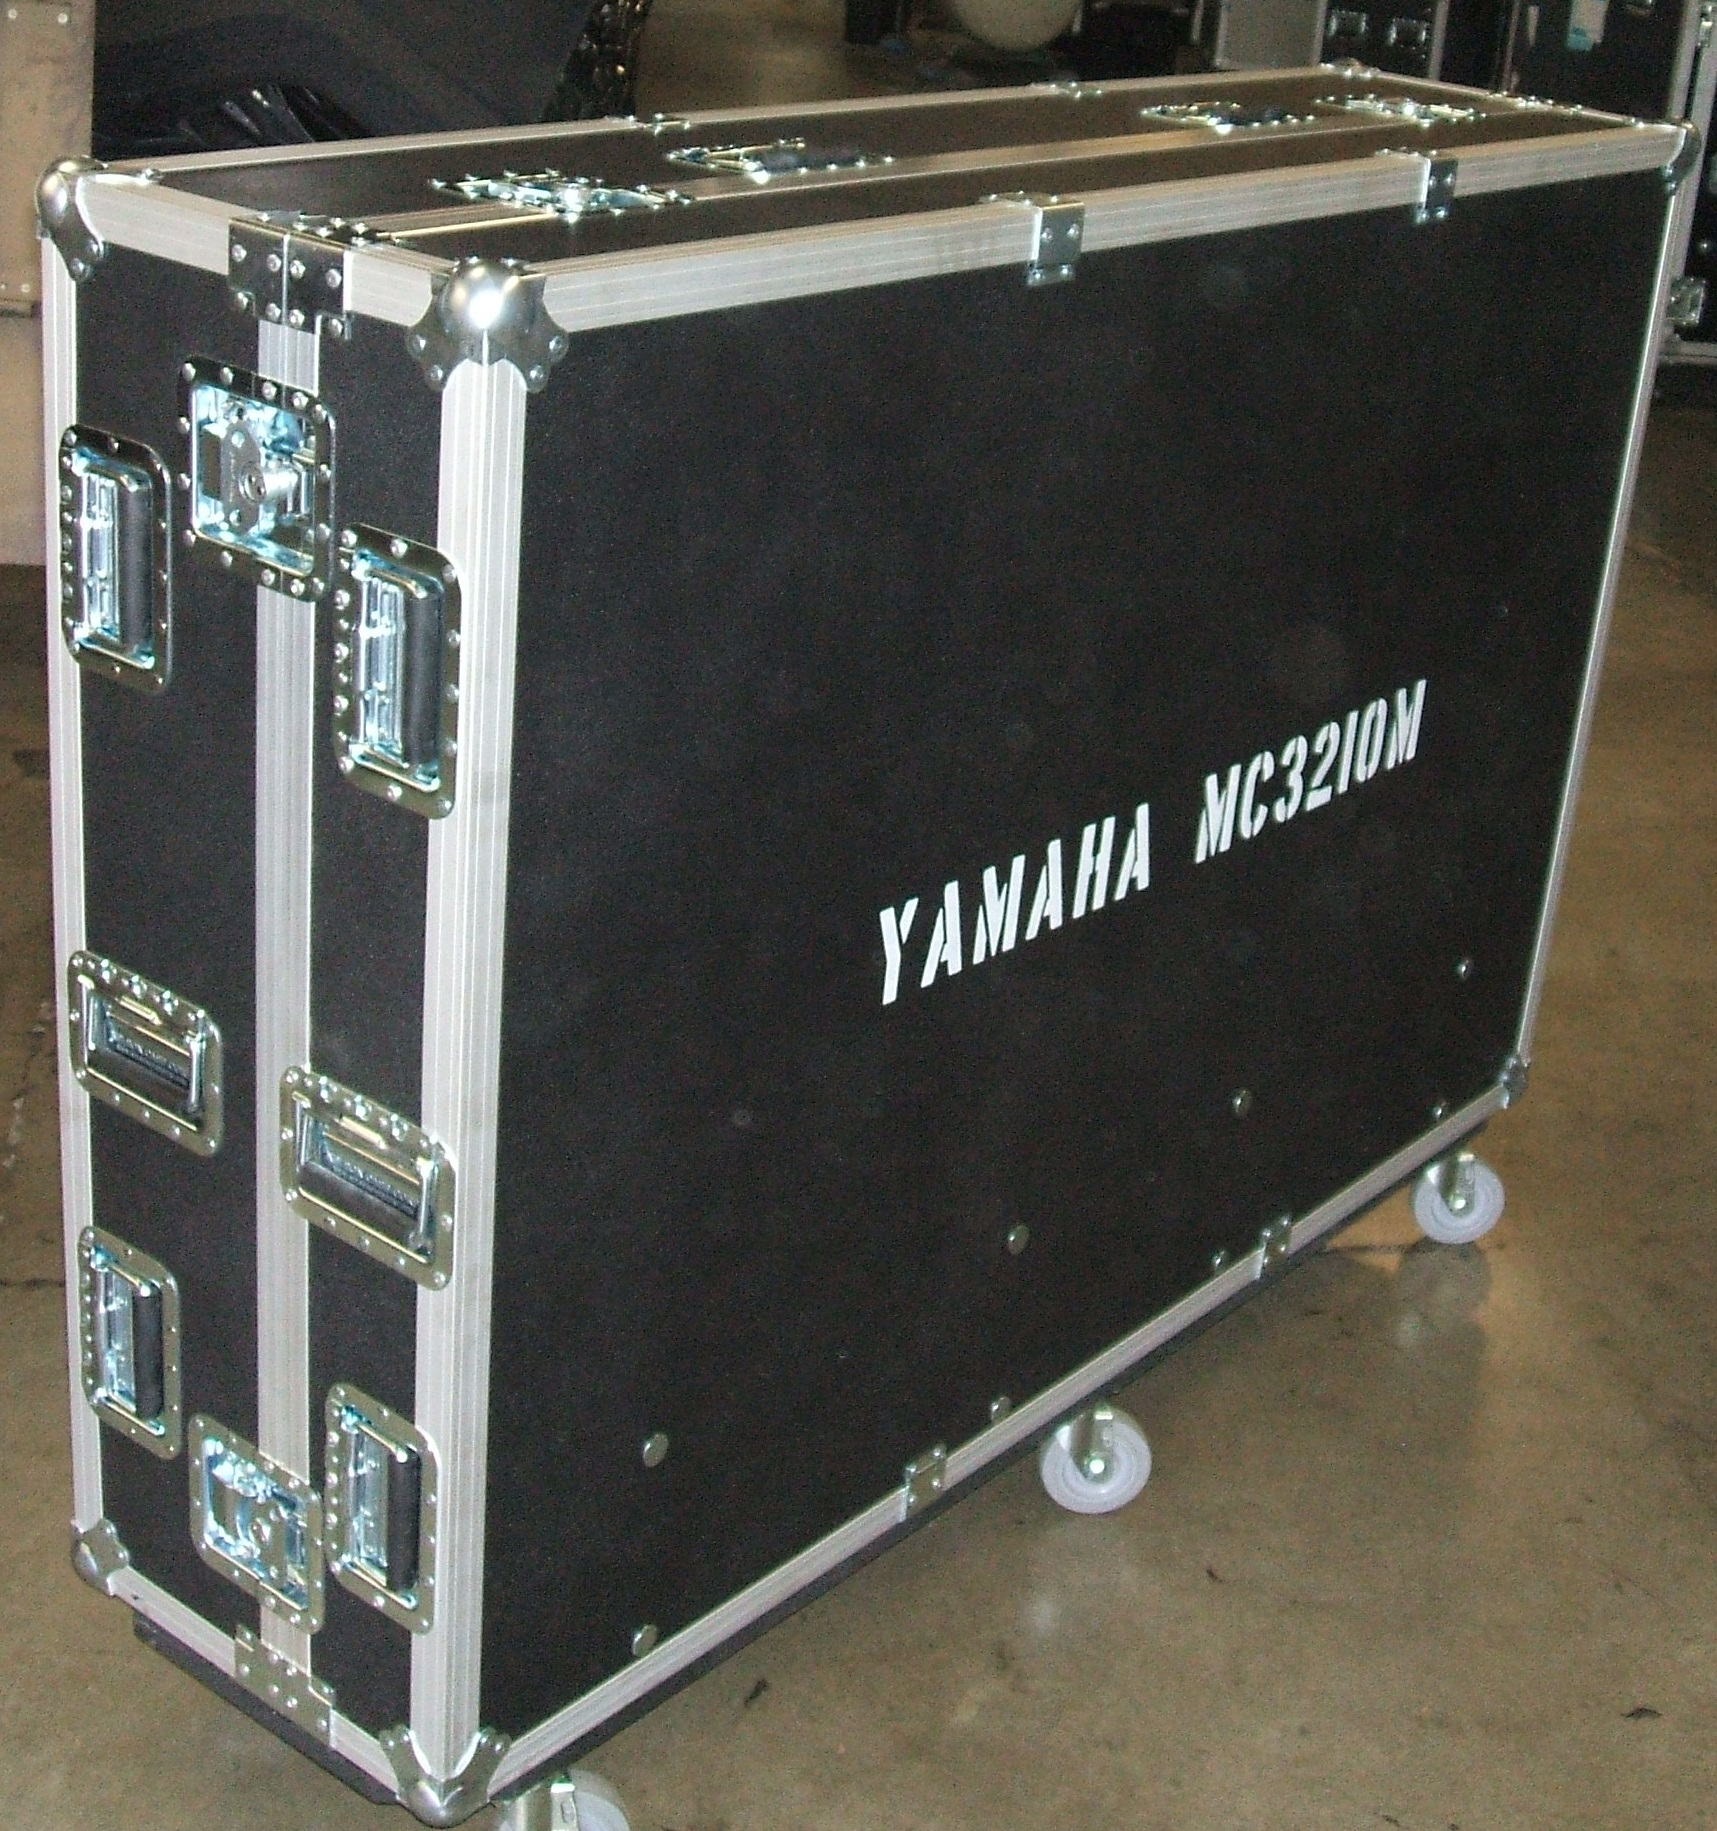 Print # 5629 - Custom Case for (1) Yamaha MC3210M Monitor Console Which Includes Heavy Duty Hardware, Heavy Duty Double Angle Aluminum Extrusion, Pop Off Cover, 8 Inch Dog house, 4 Inch Casters, 3/8 Black ABS  By Nelson Case Corp